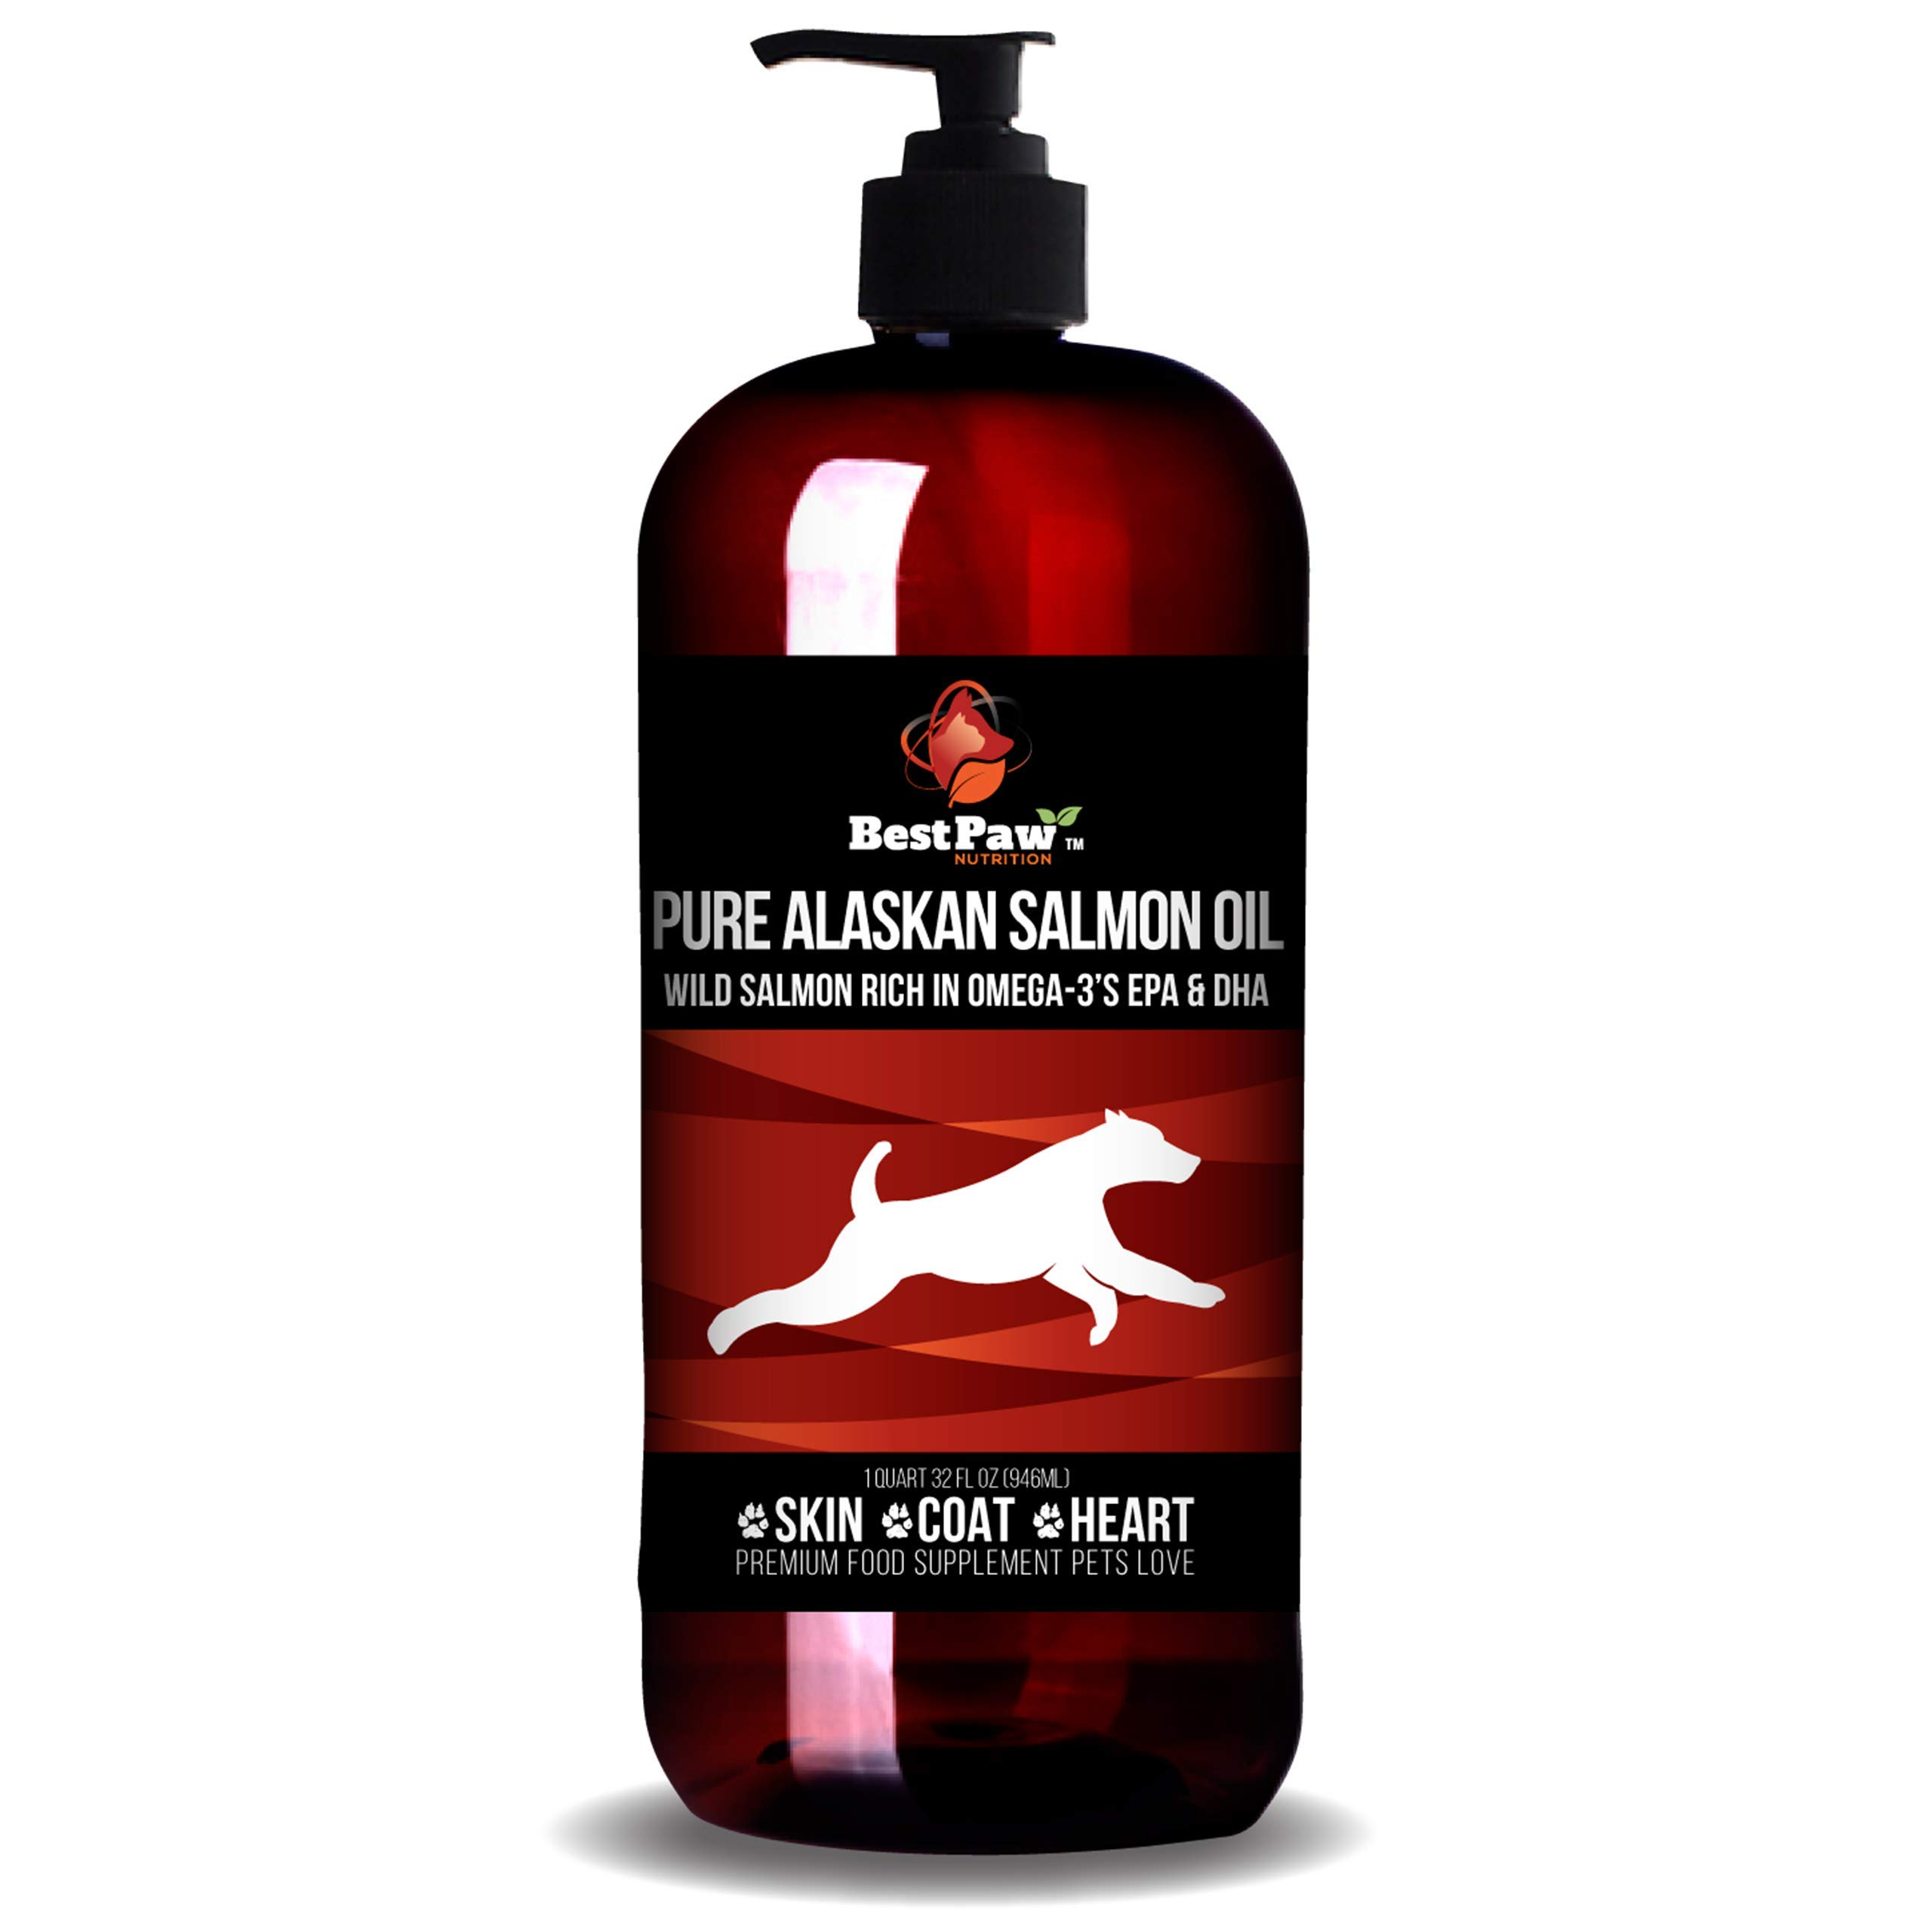 Premium Organic Wild-Caught Pure Alaskan Salmon Vitamins D3 Potassium B Complex & Antioxidants Best Holistic Home Remedy Fish Oil Healthy Heart Skin & Coat Dogs Cats Love Made in USA by Pure Paw Nutrition